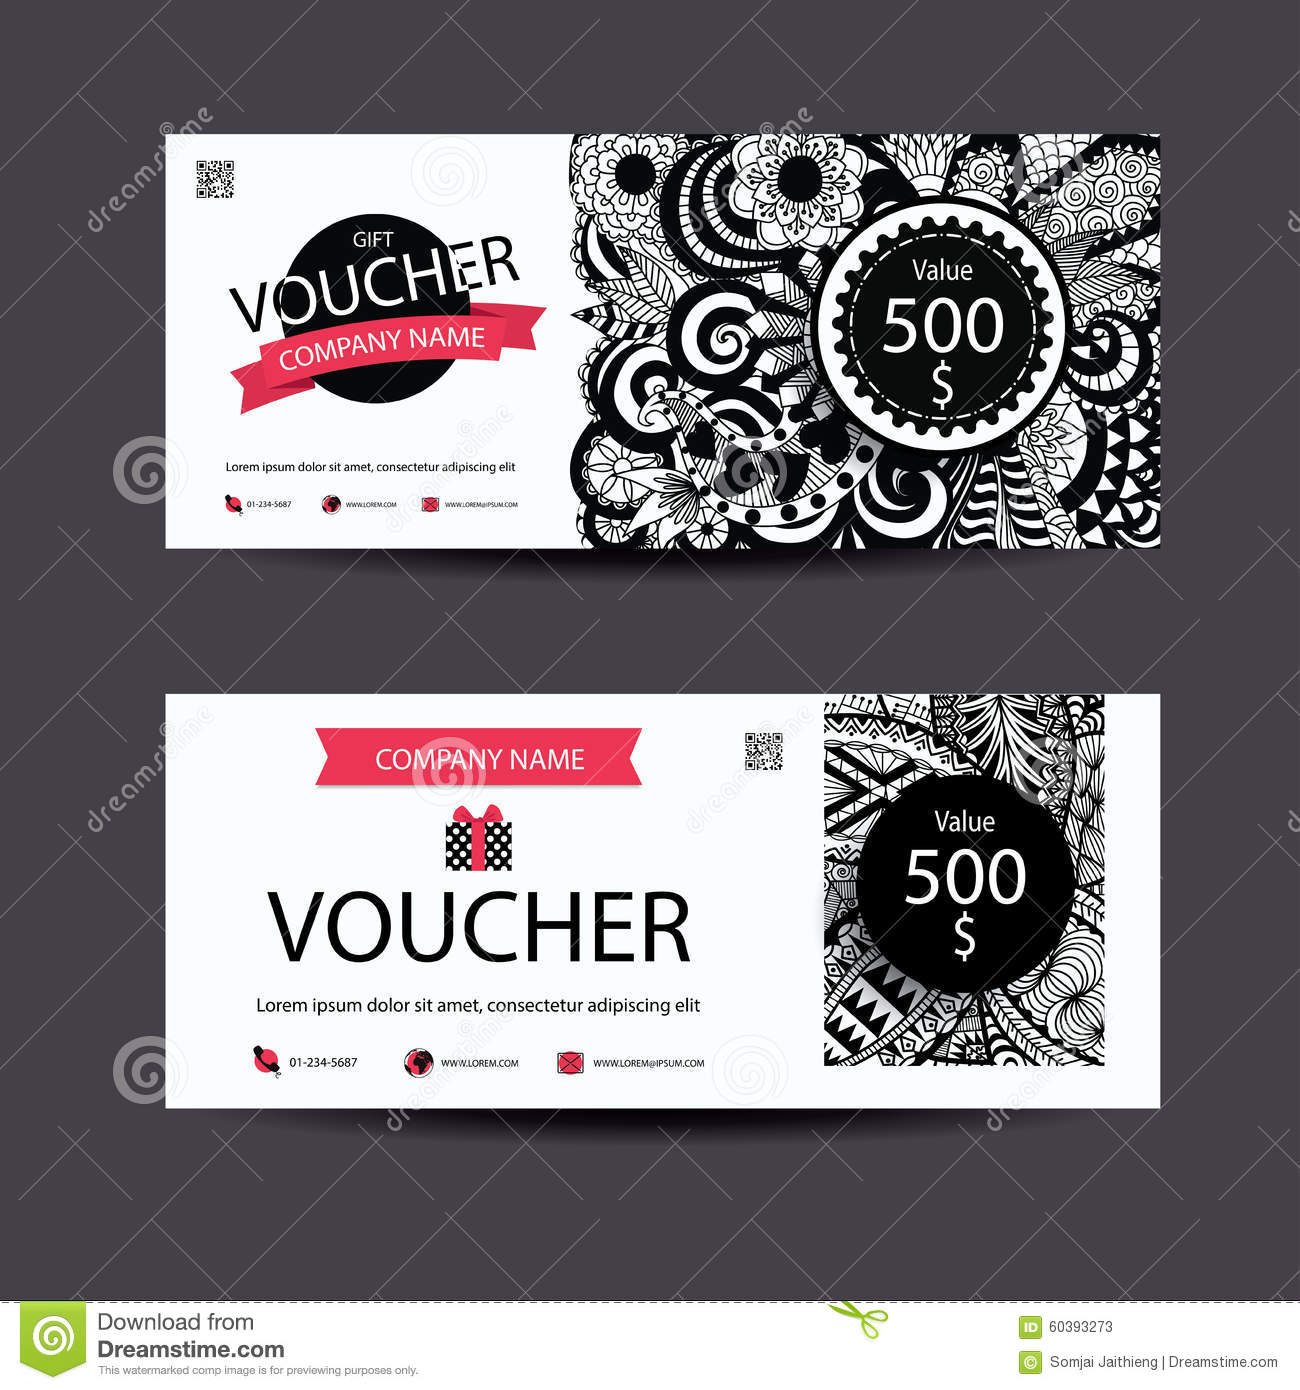 Gift voucher template zentangle style for spa,beauty,fashion business and so on.